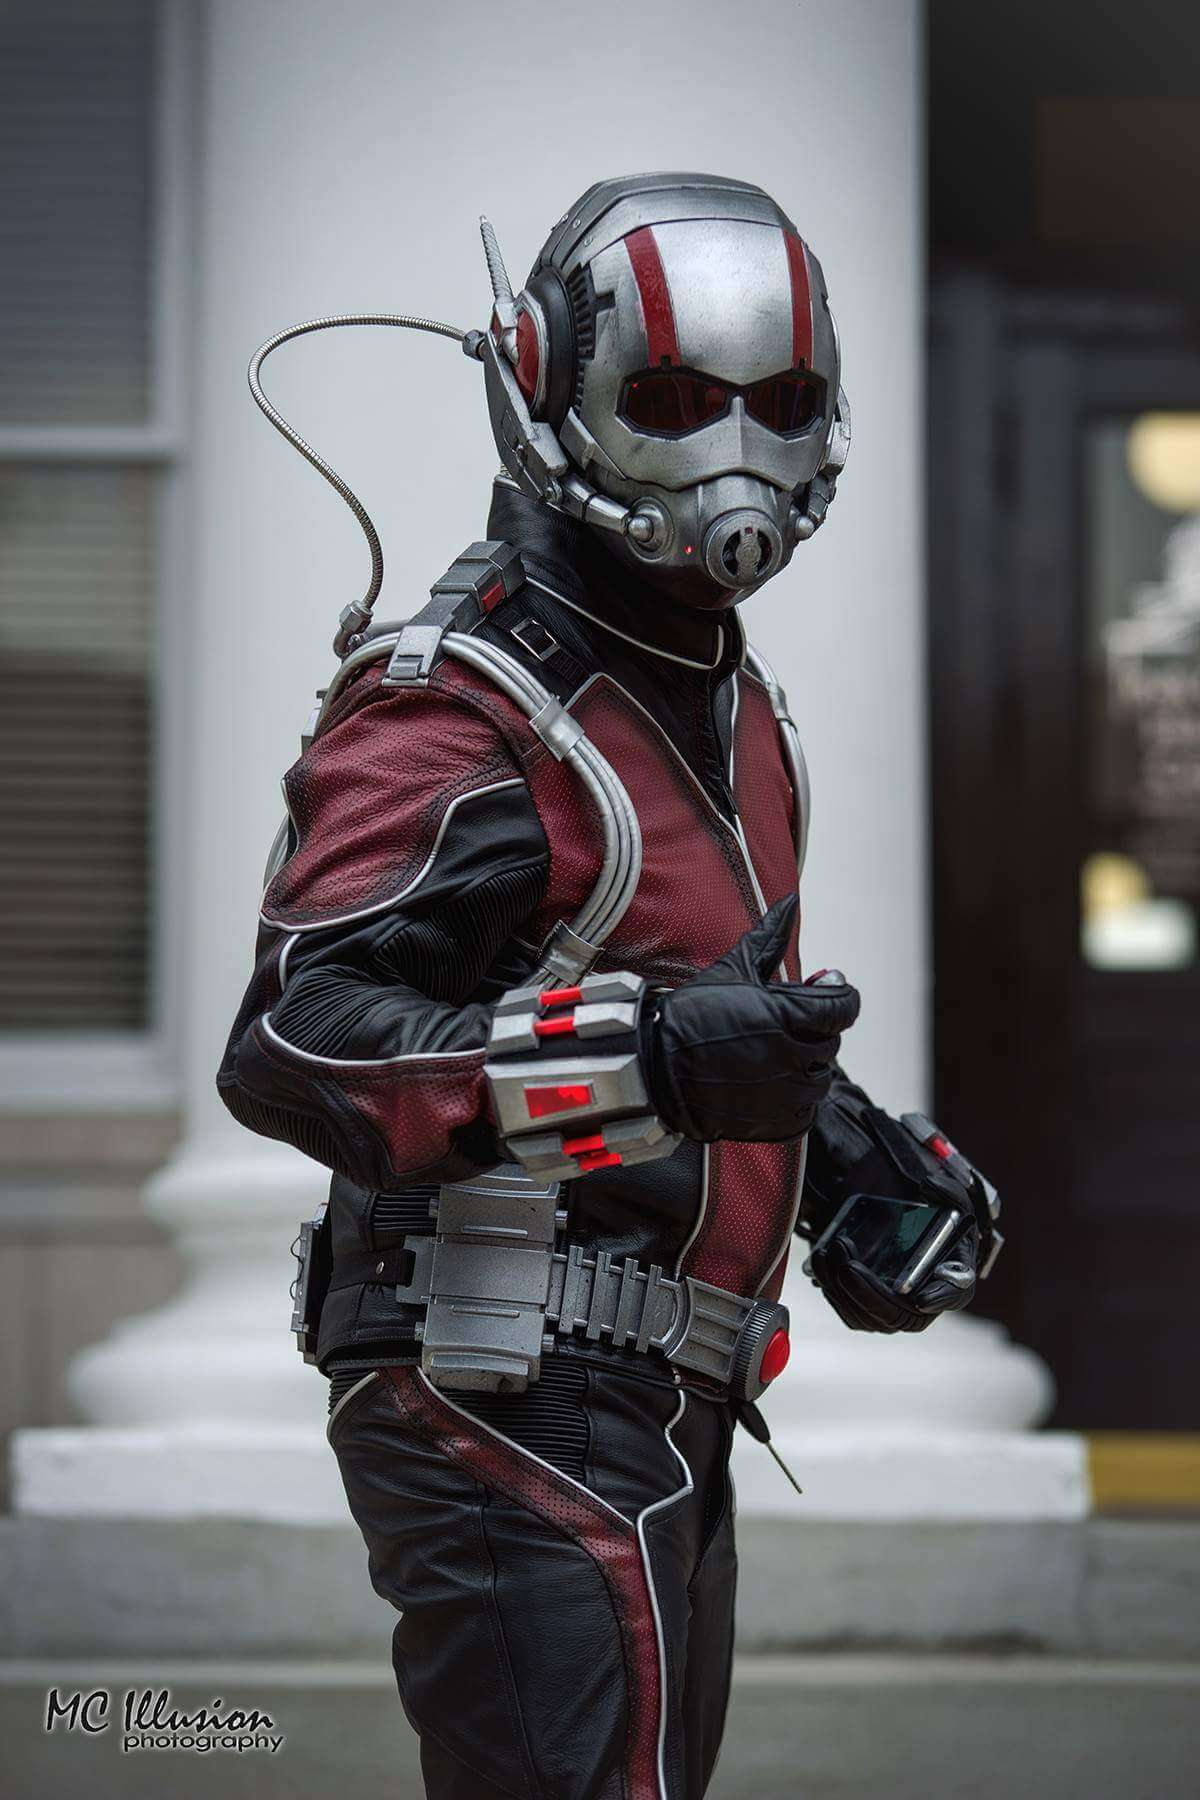 Brian/antman.selfies as Ant-Man